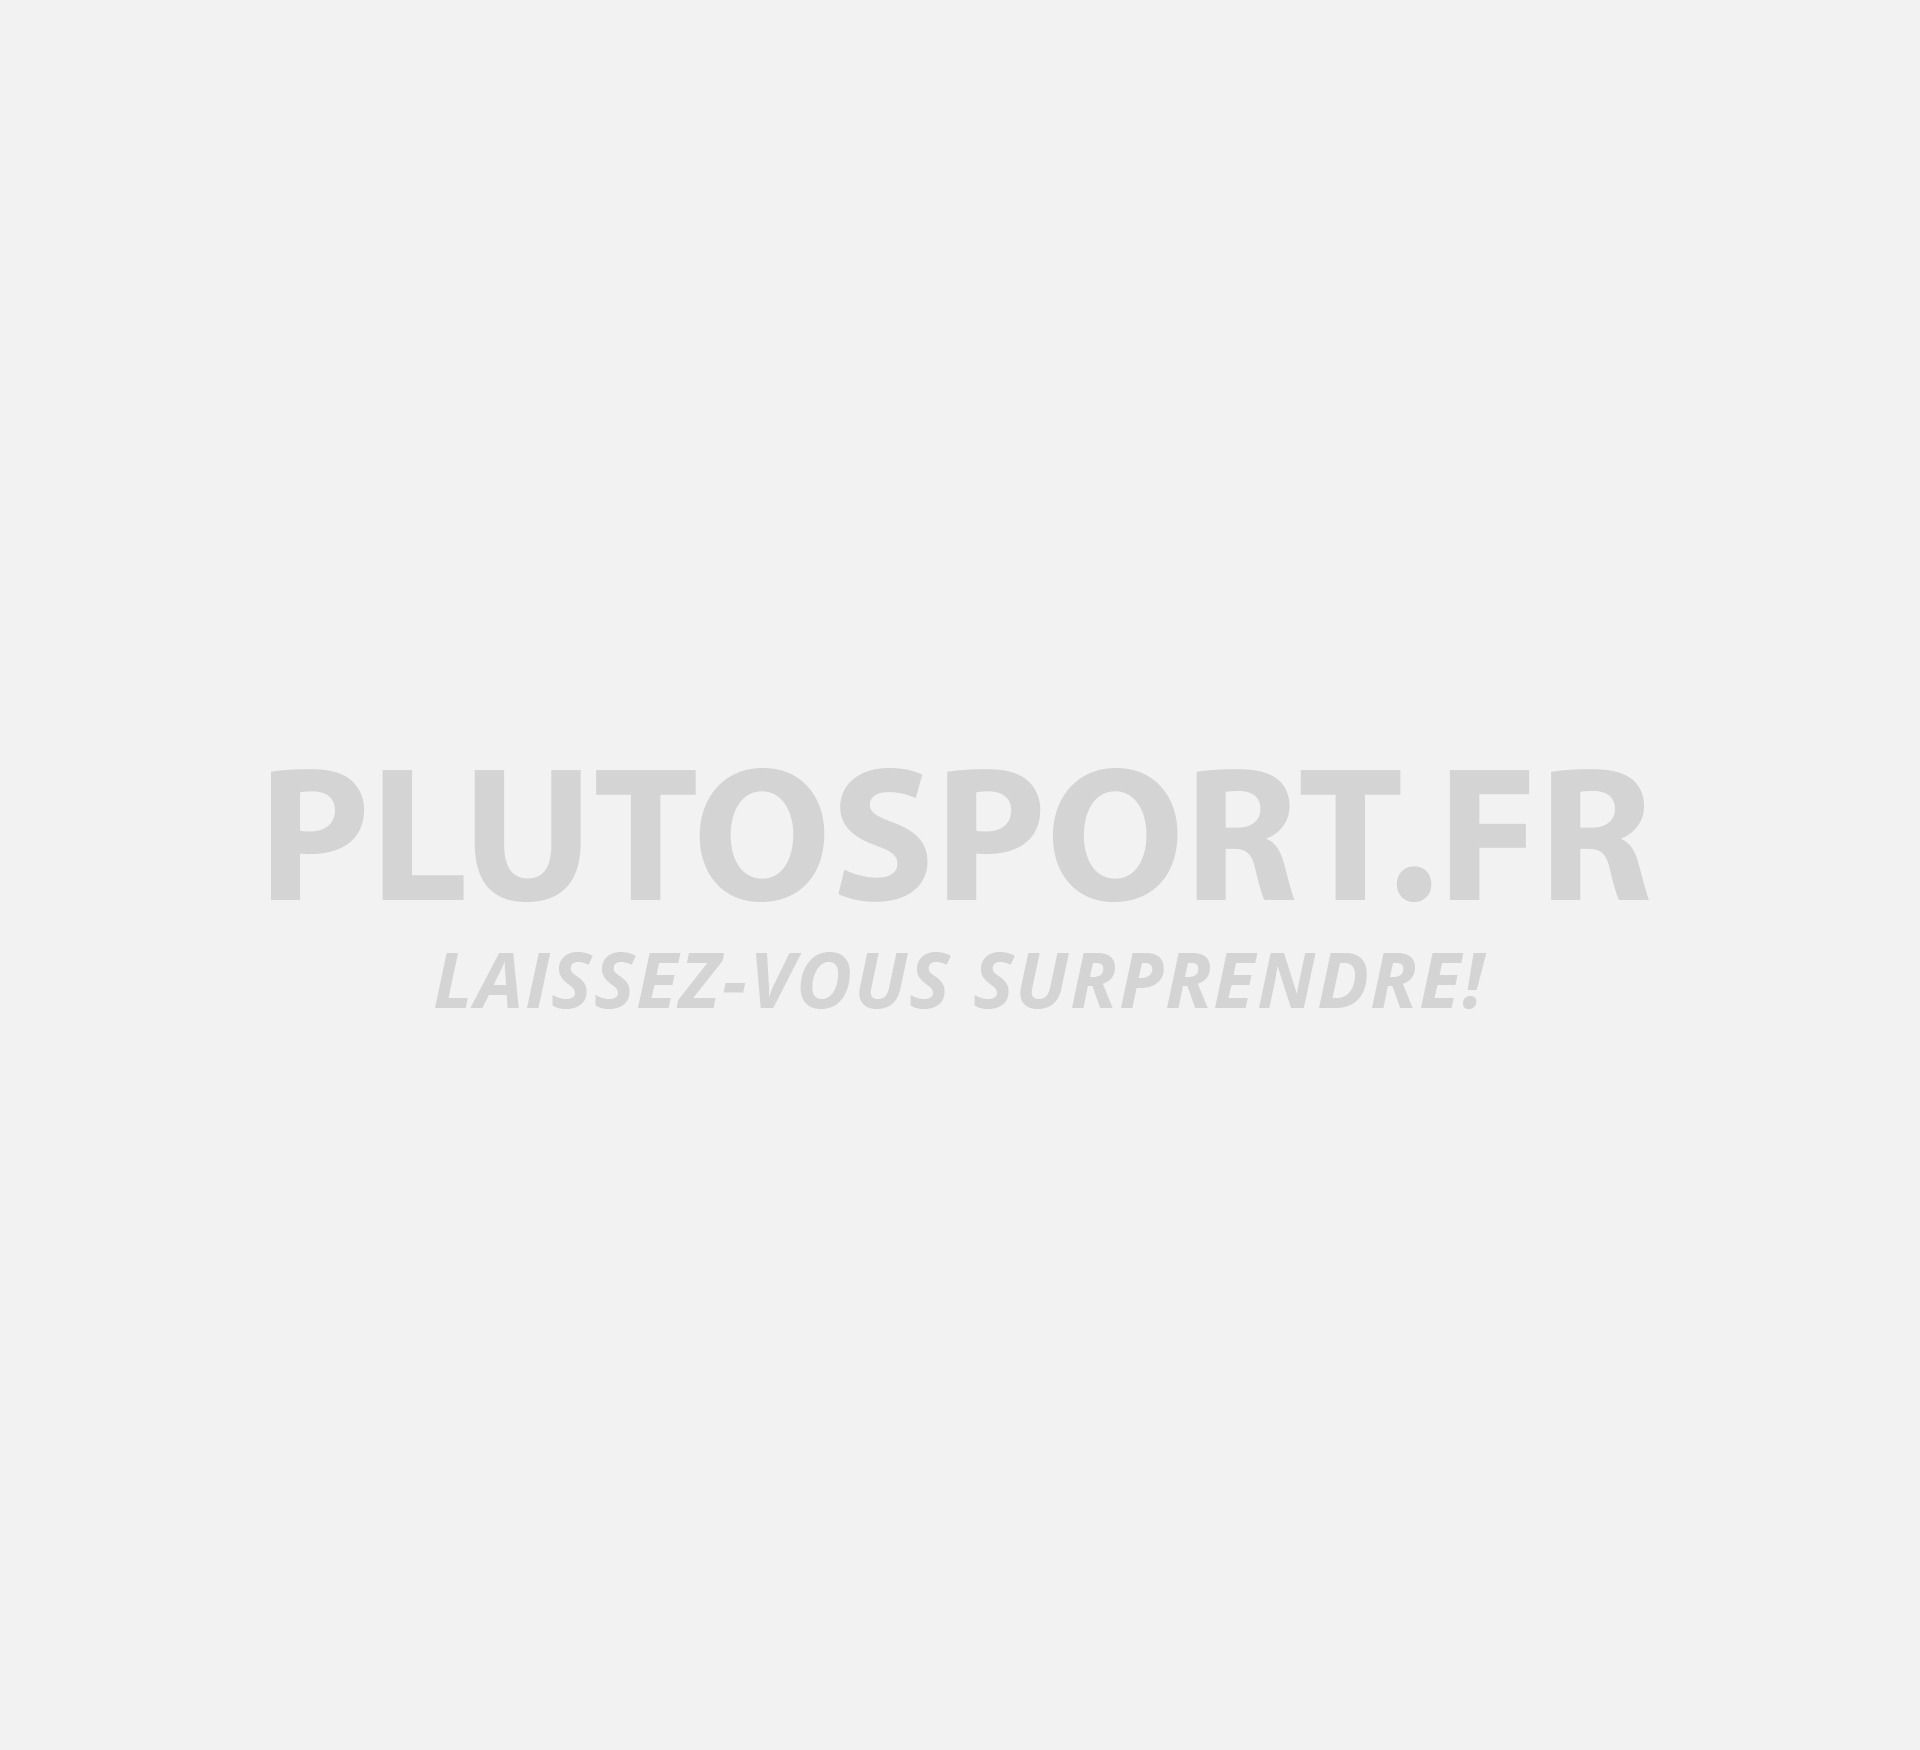 Mac in a Sac Mias Origin Overtrouser Senior. Pantalon de pluie